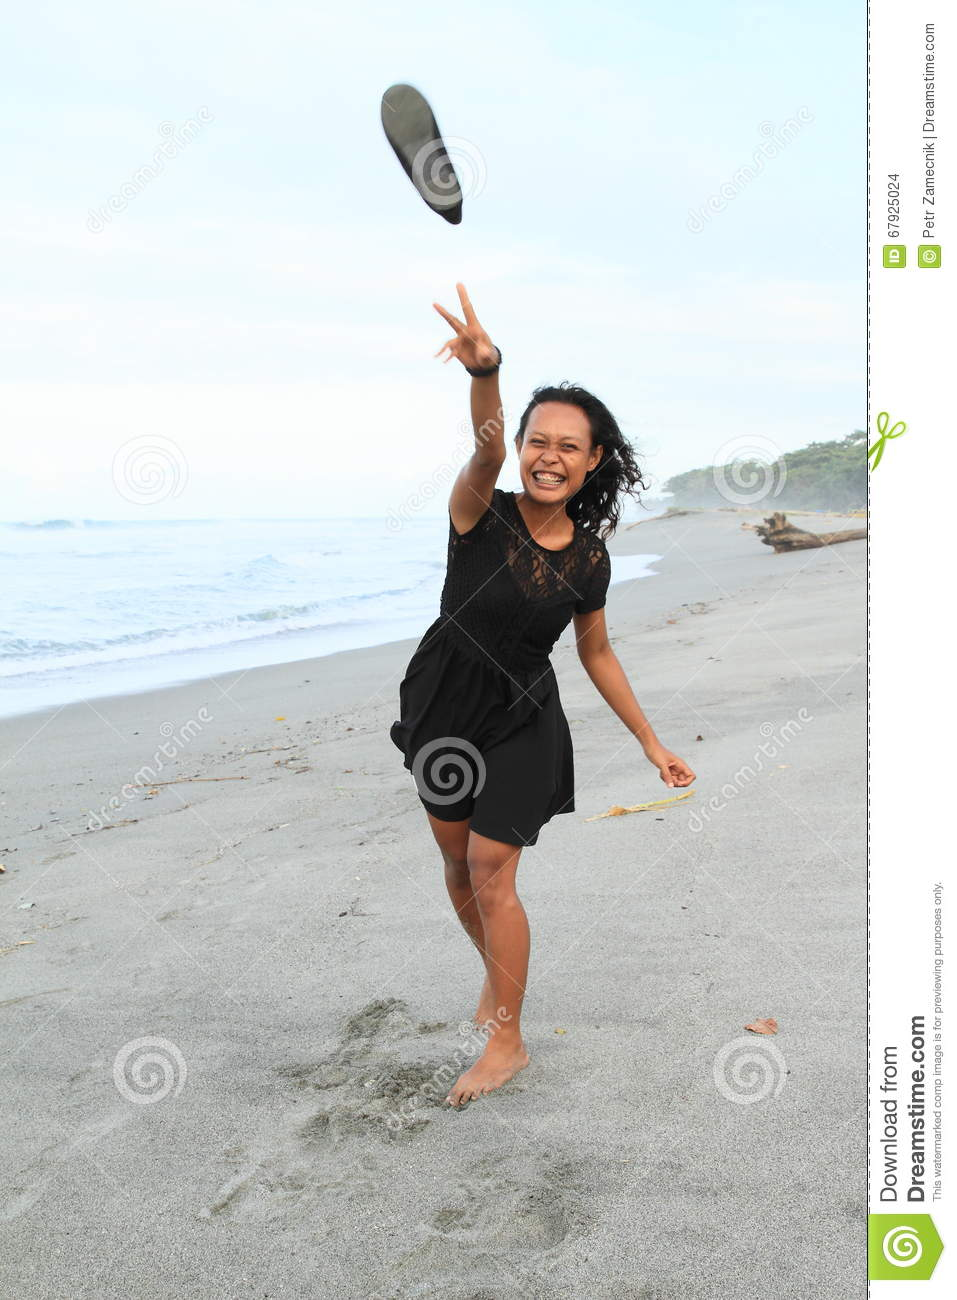 Papuan Girl Throwing A Shoe Stock Photo Image Of Throwing Bare